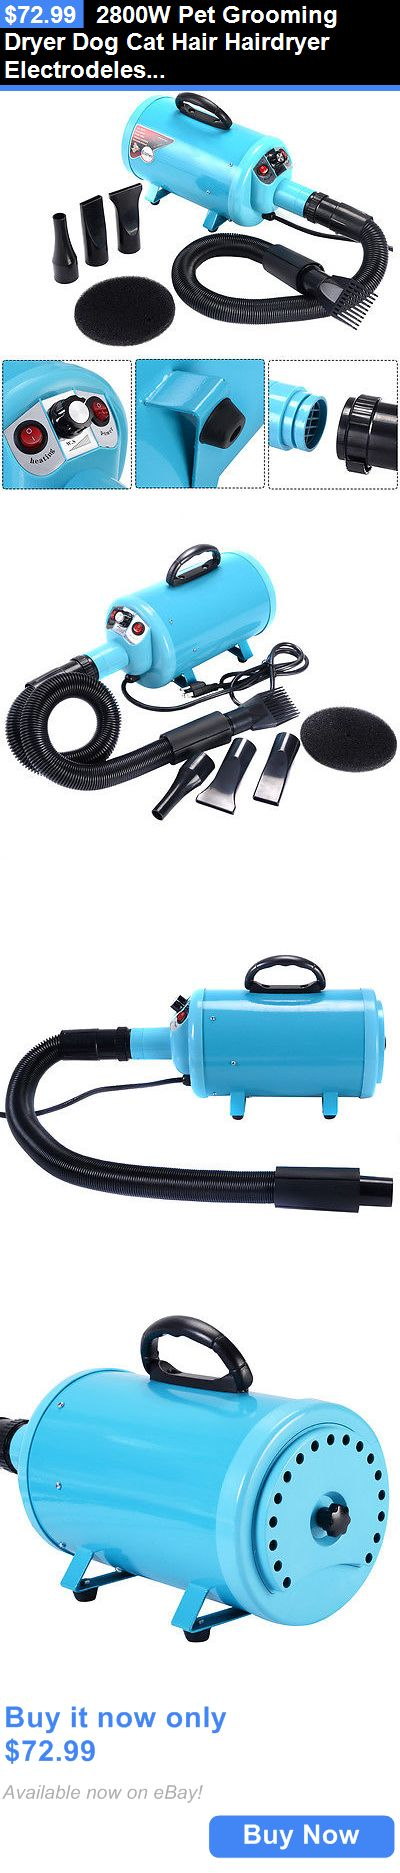 Pet Supplies: 2800W Pet Grooming Dryer Dog Cat Hair Hairdryer Electrodeless Speed W/ 4 Nozzle BUY IT NOW ONLY: $72.99